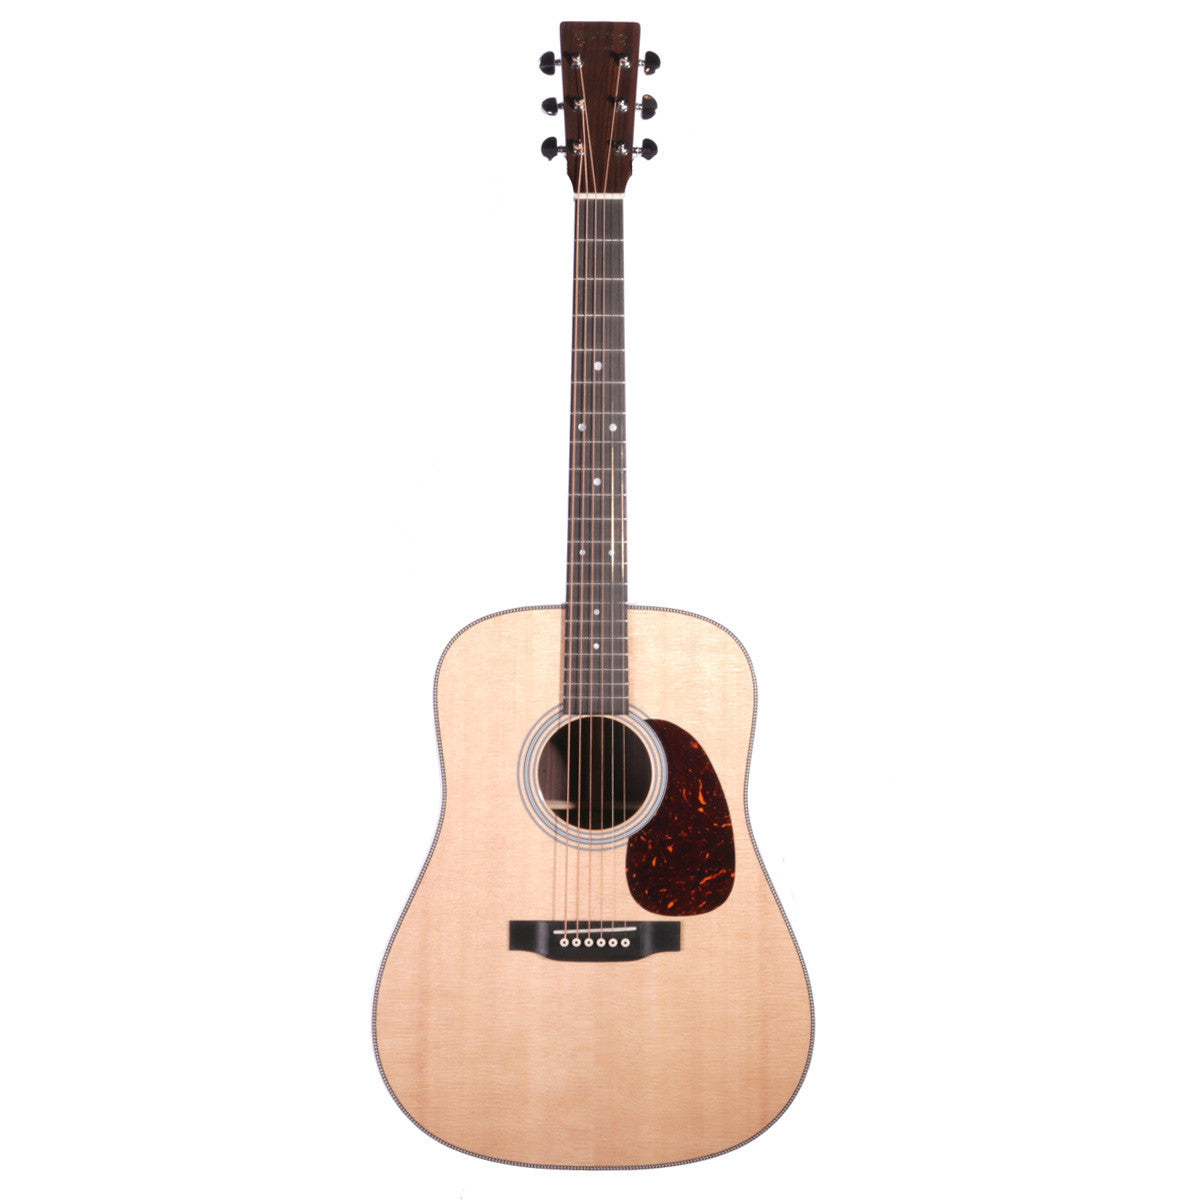 Martin HD-28 - Standard Series - Vintage Guitar Boutique - 2